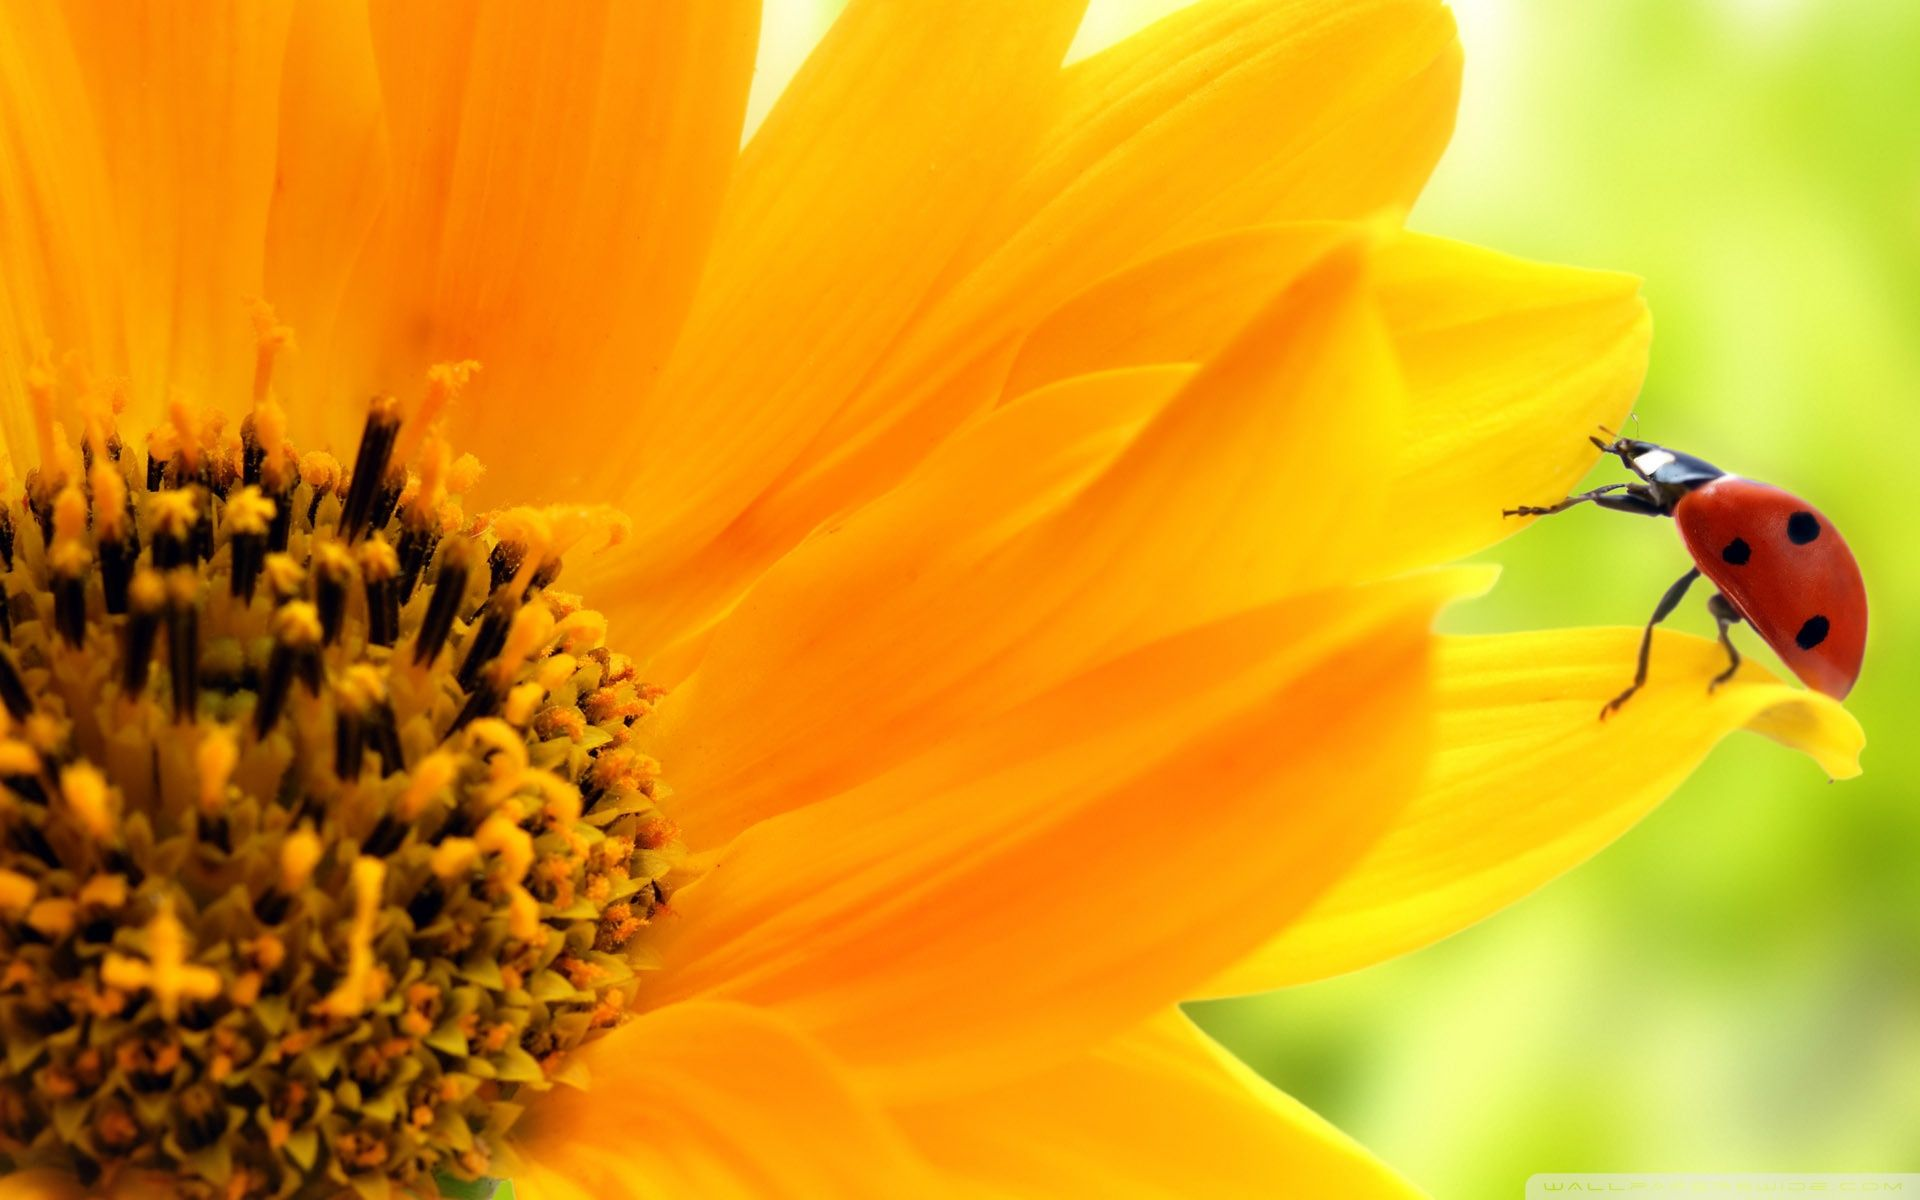 sunflower and ladybug hd desktop wallpaper : high definition